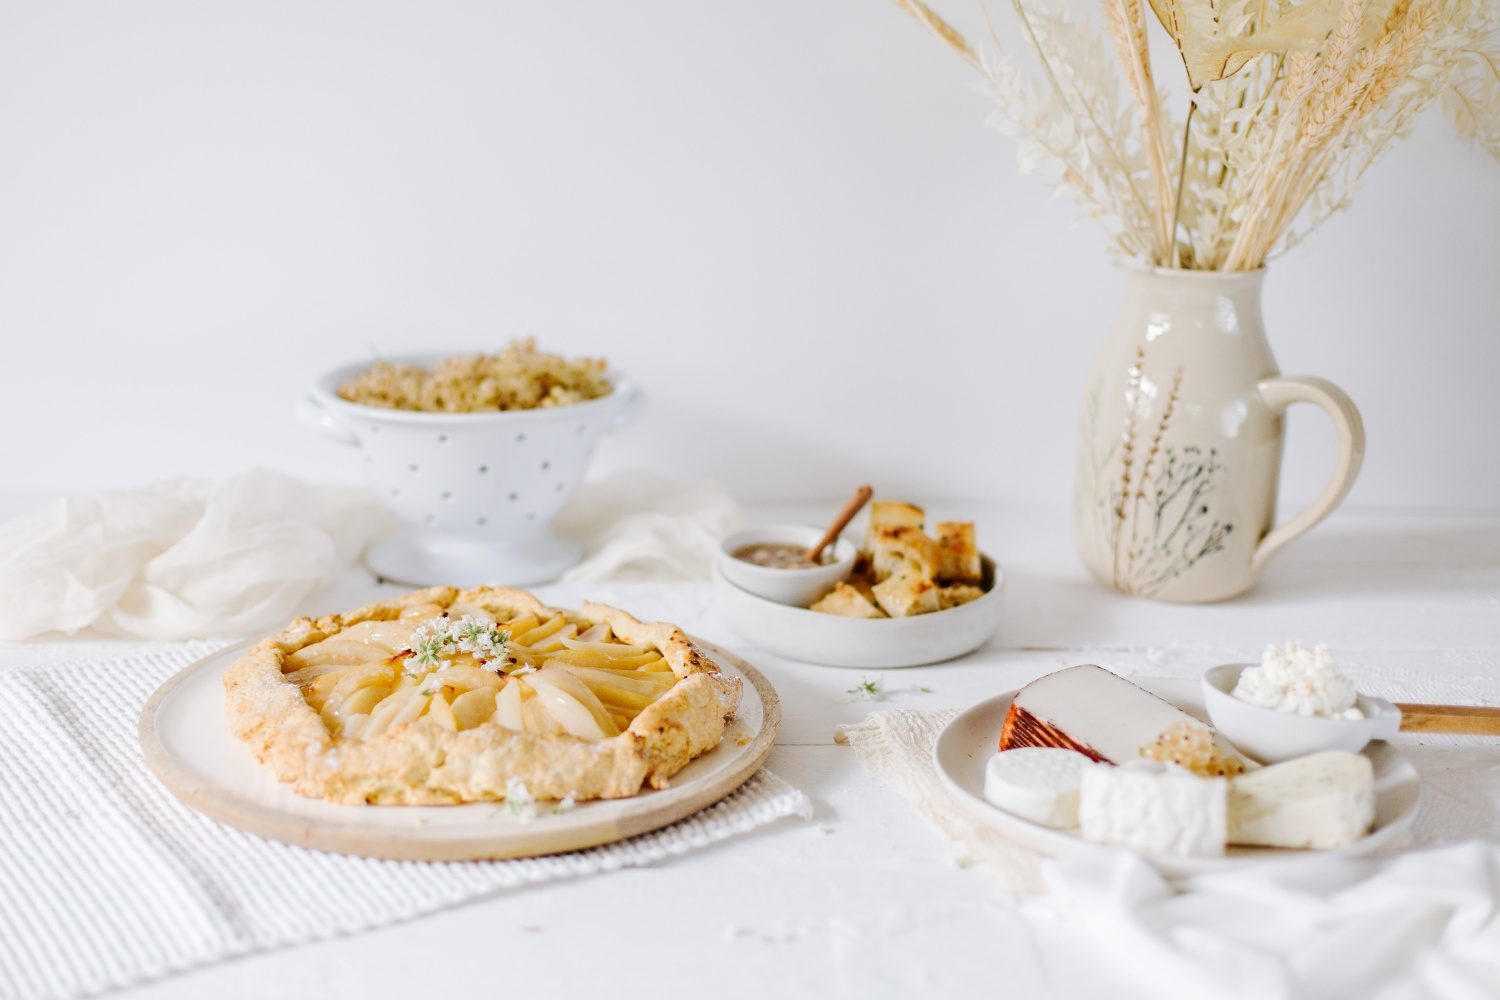 foodstyling_all-in-white_stuttgart_9T7A5313